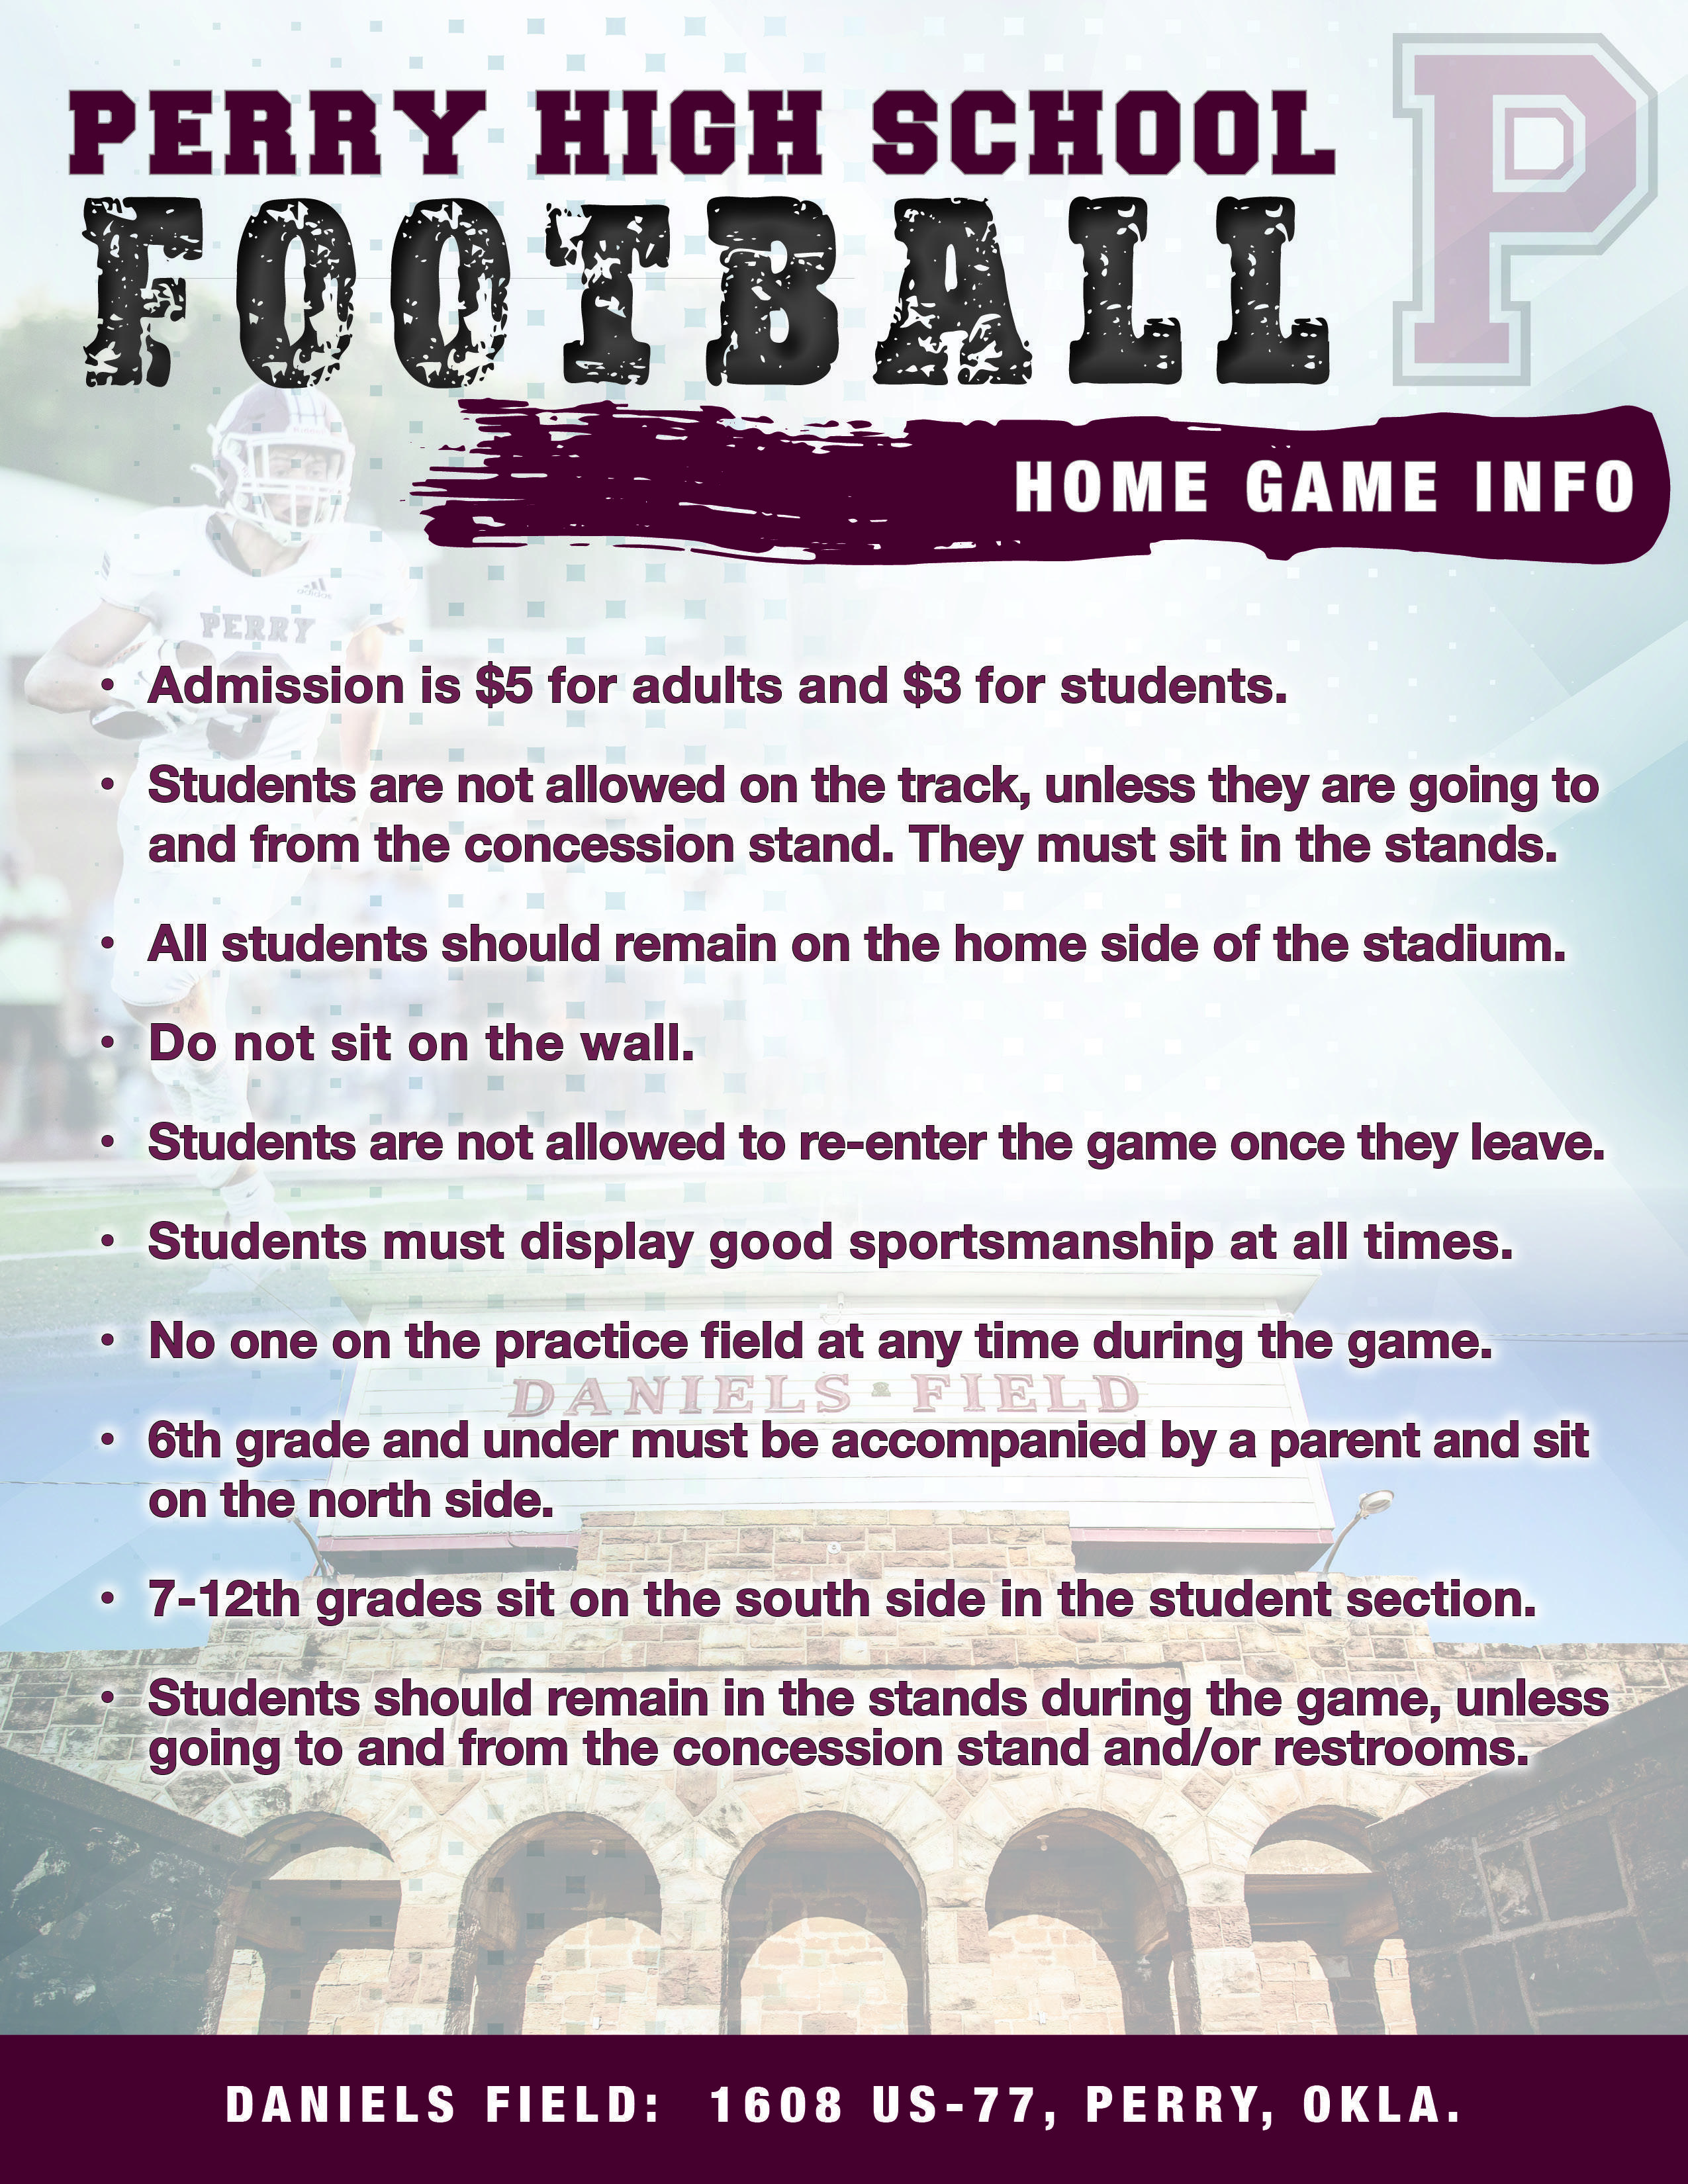 home game information